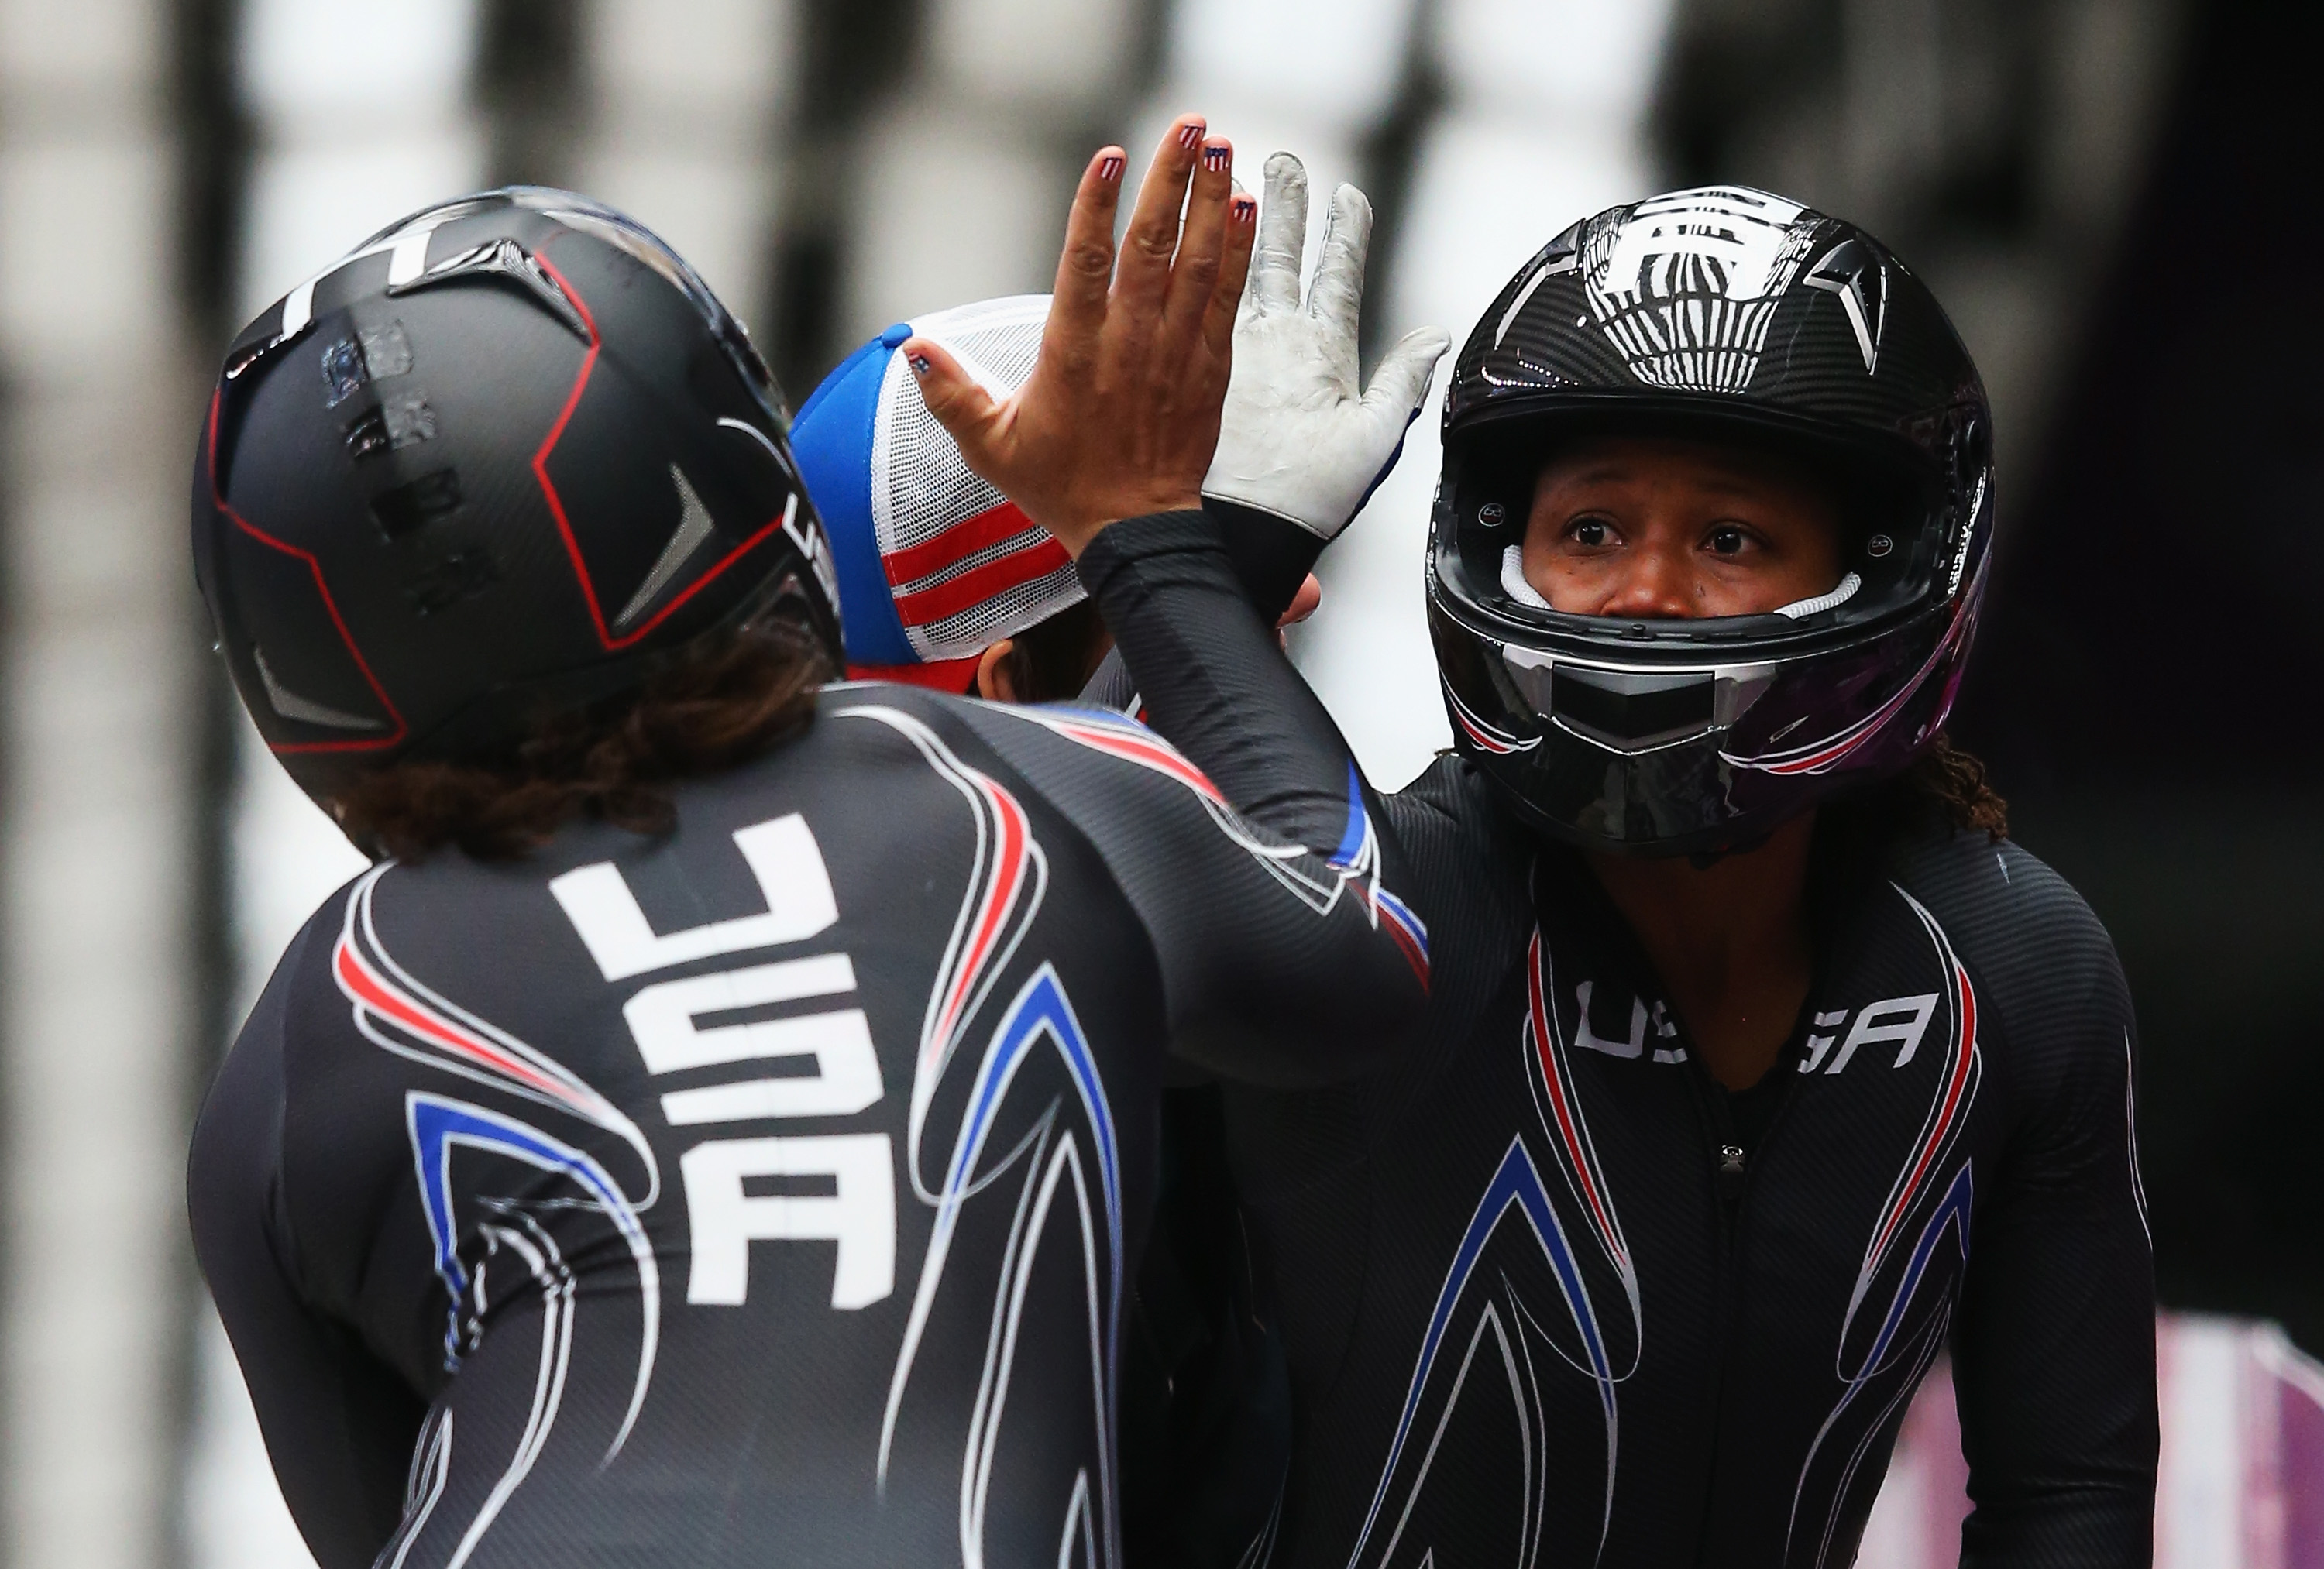 Elana Meyers (left) and Lauryn Williams of the United States team 1 celebrate during the Women's Bobsleigh at the Sochi 2014 Winter Olympics in Russia. Alex Livesey—Getty Images